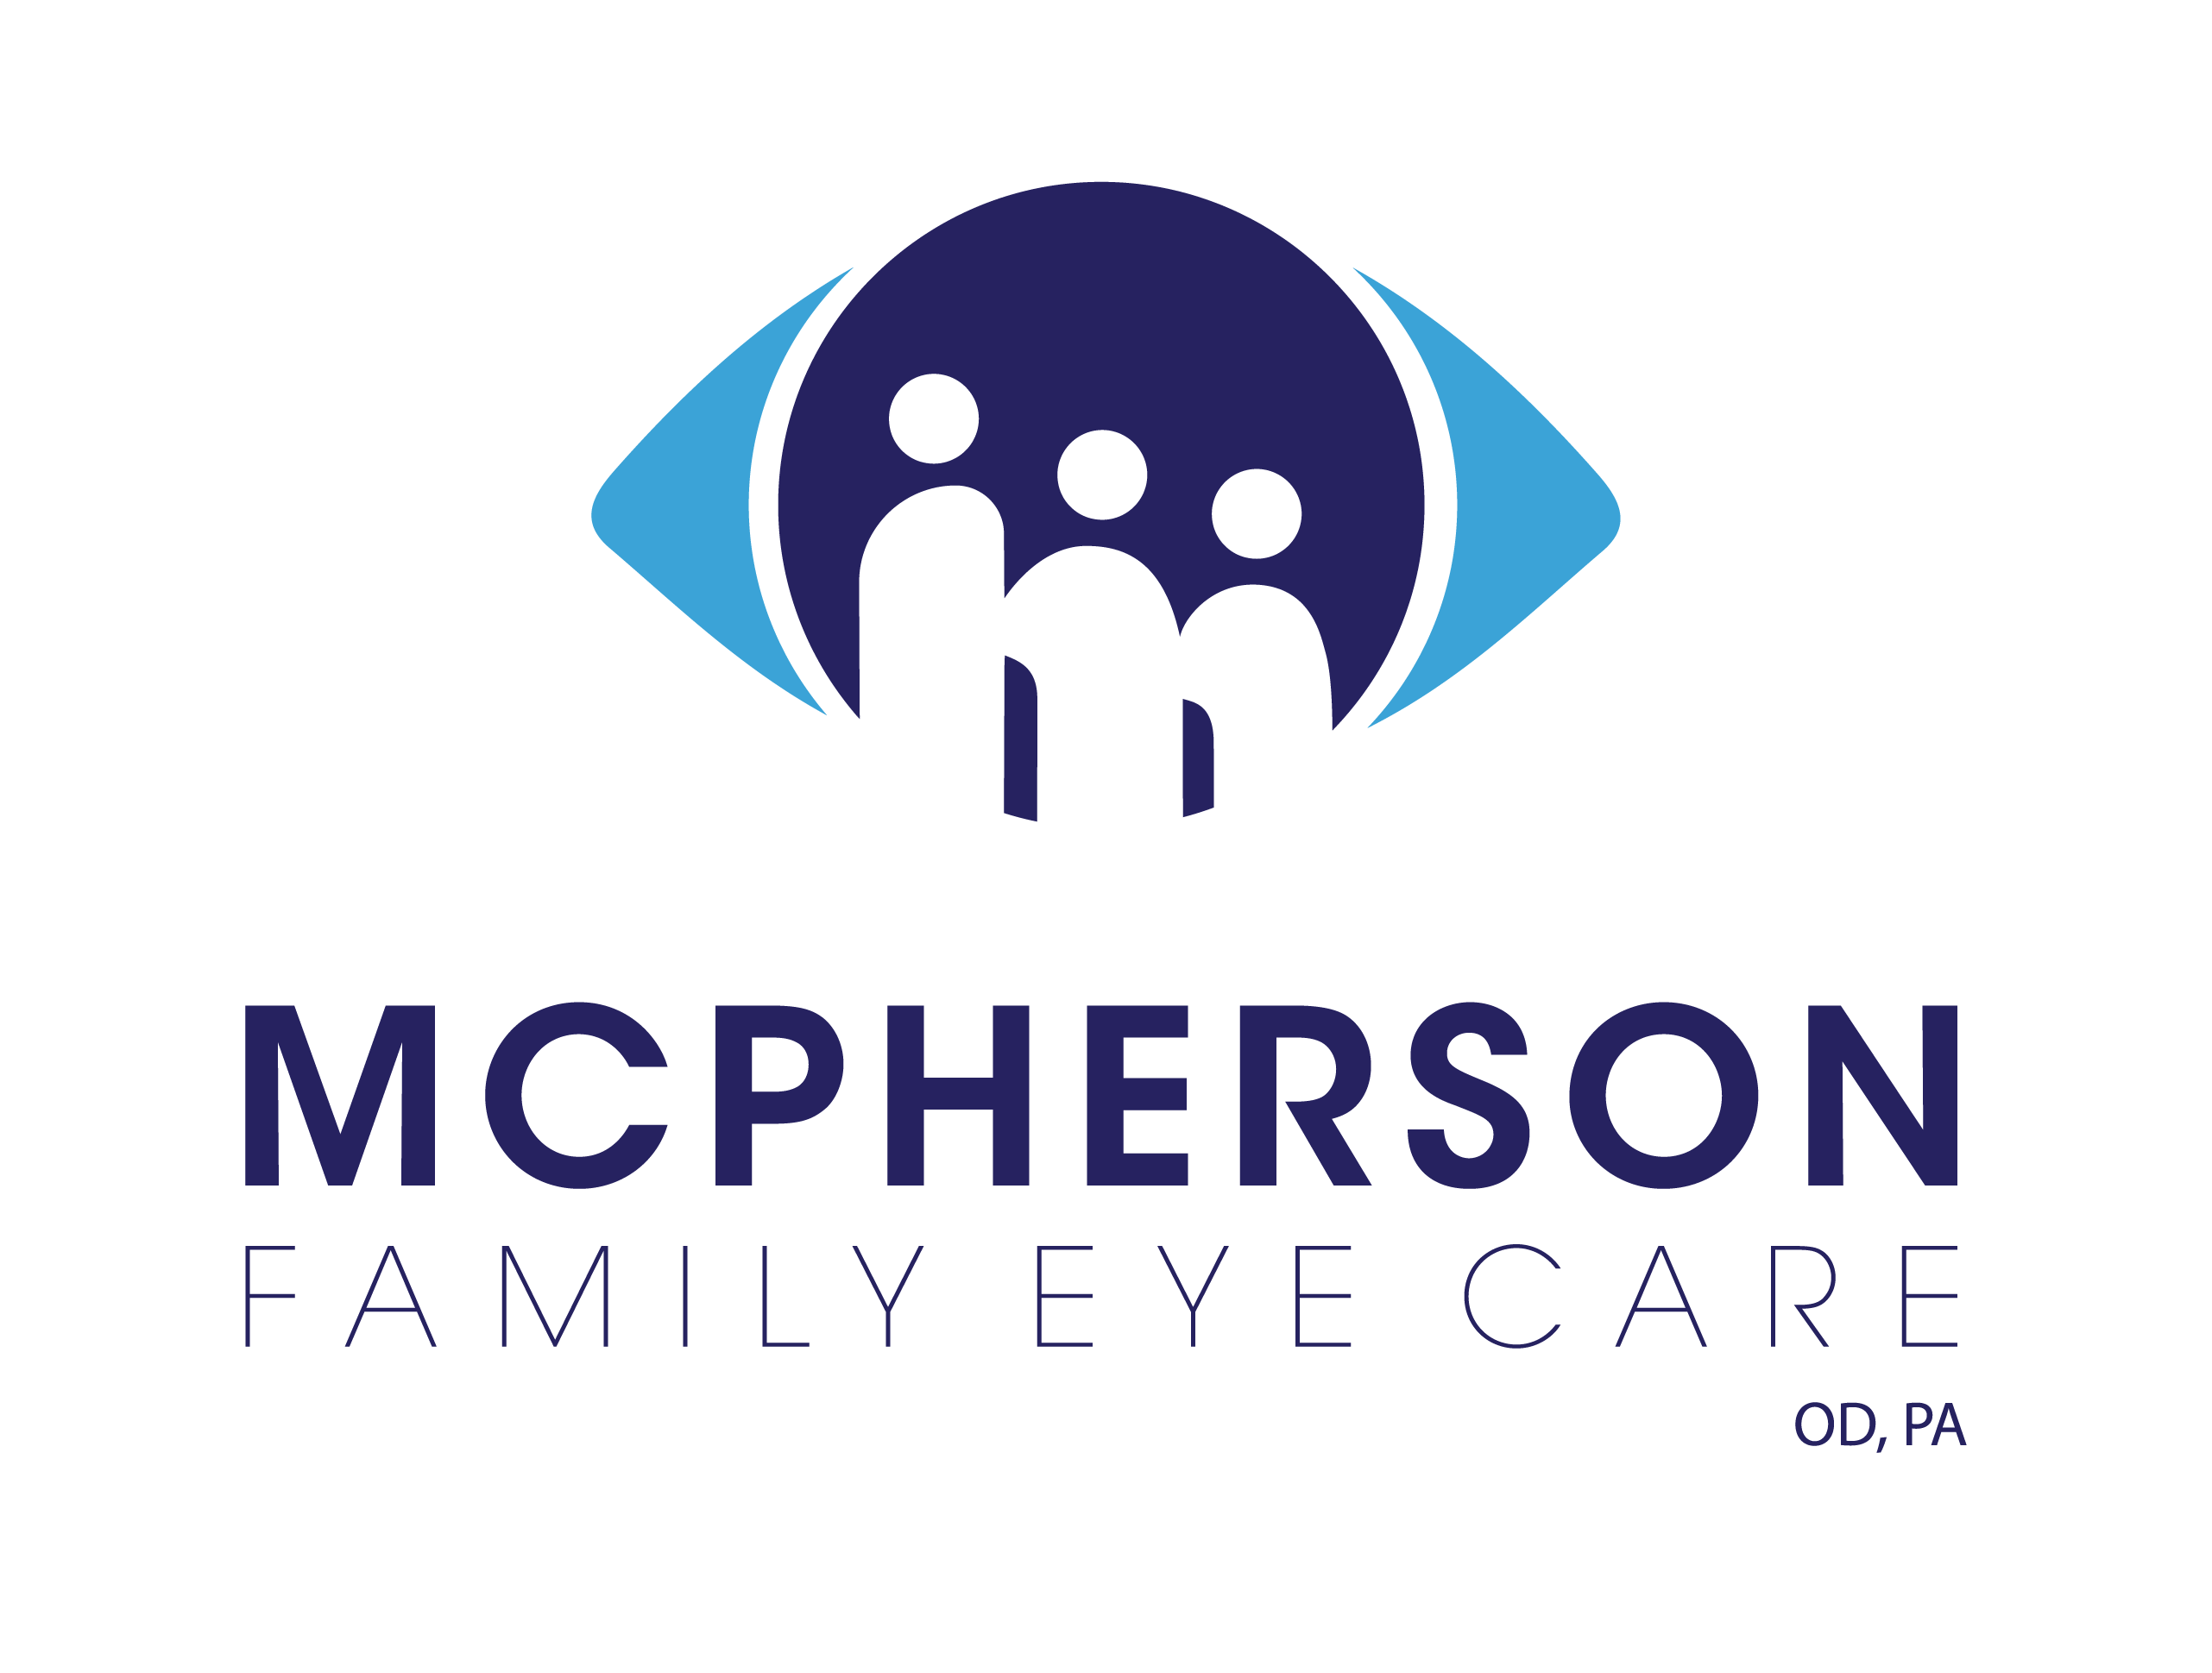 Sponsor McPherson Family Eye Care